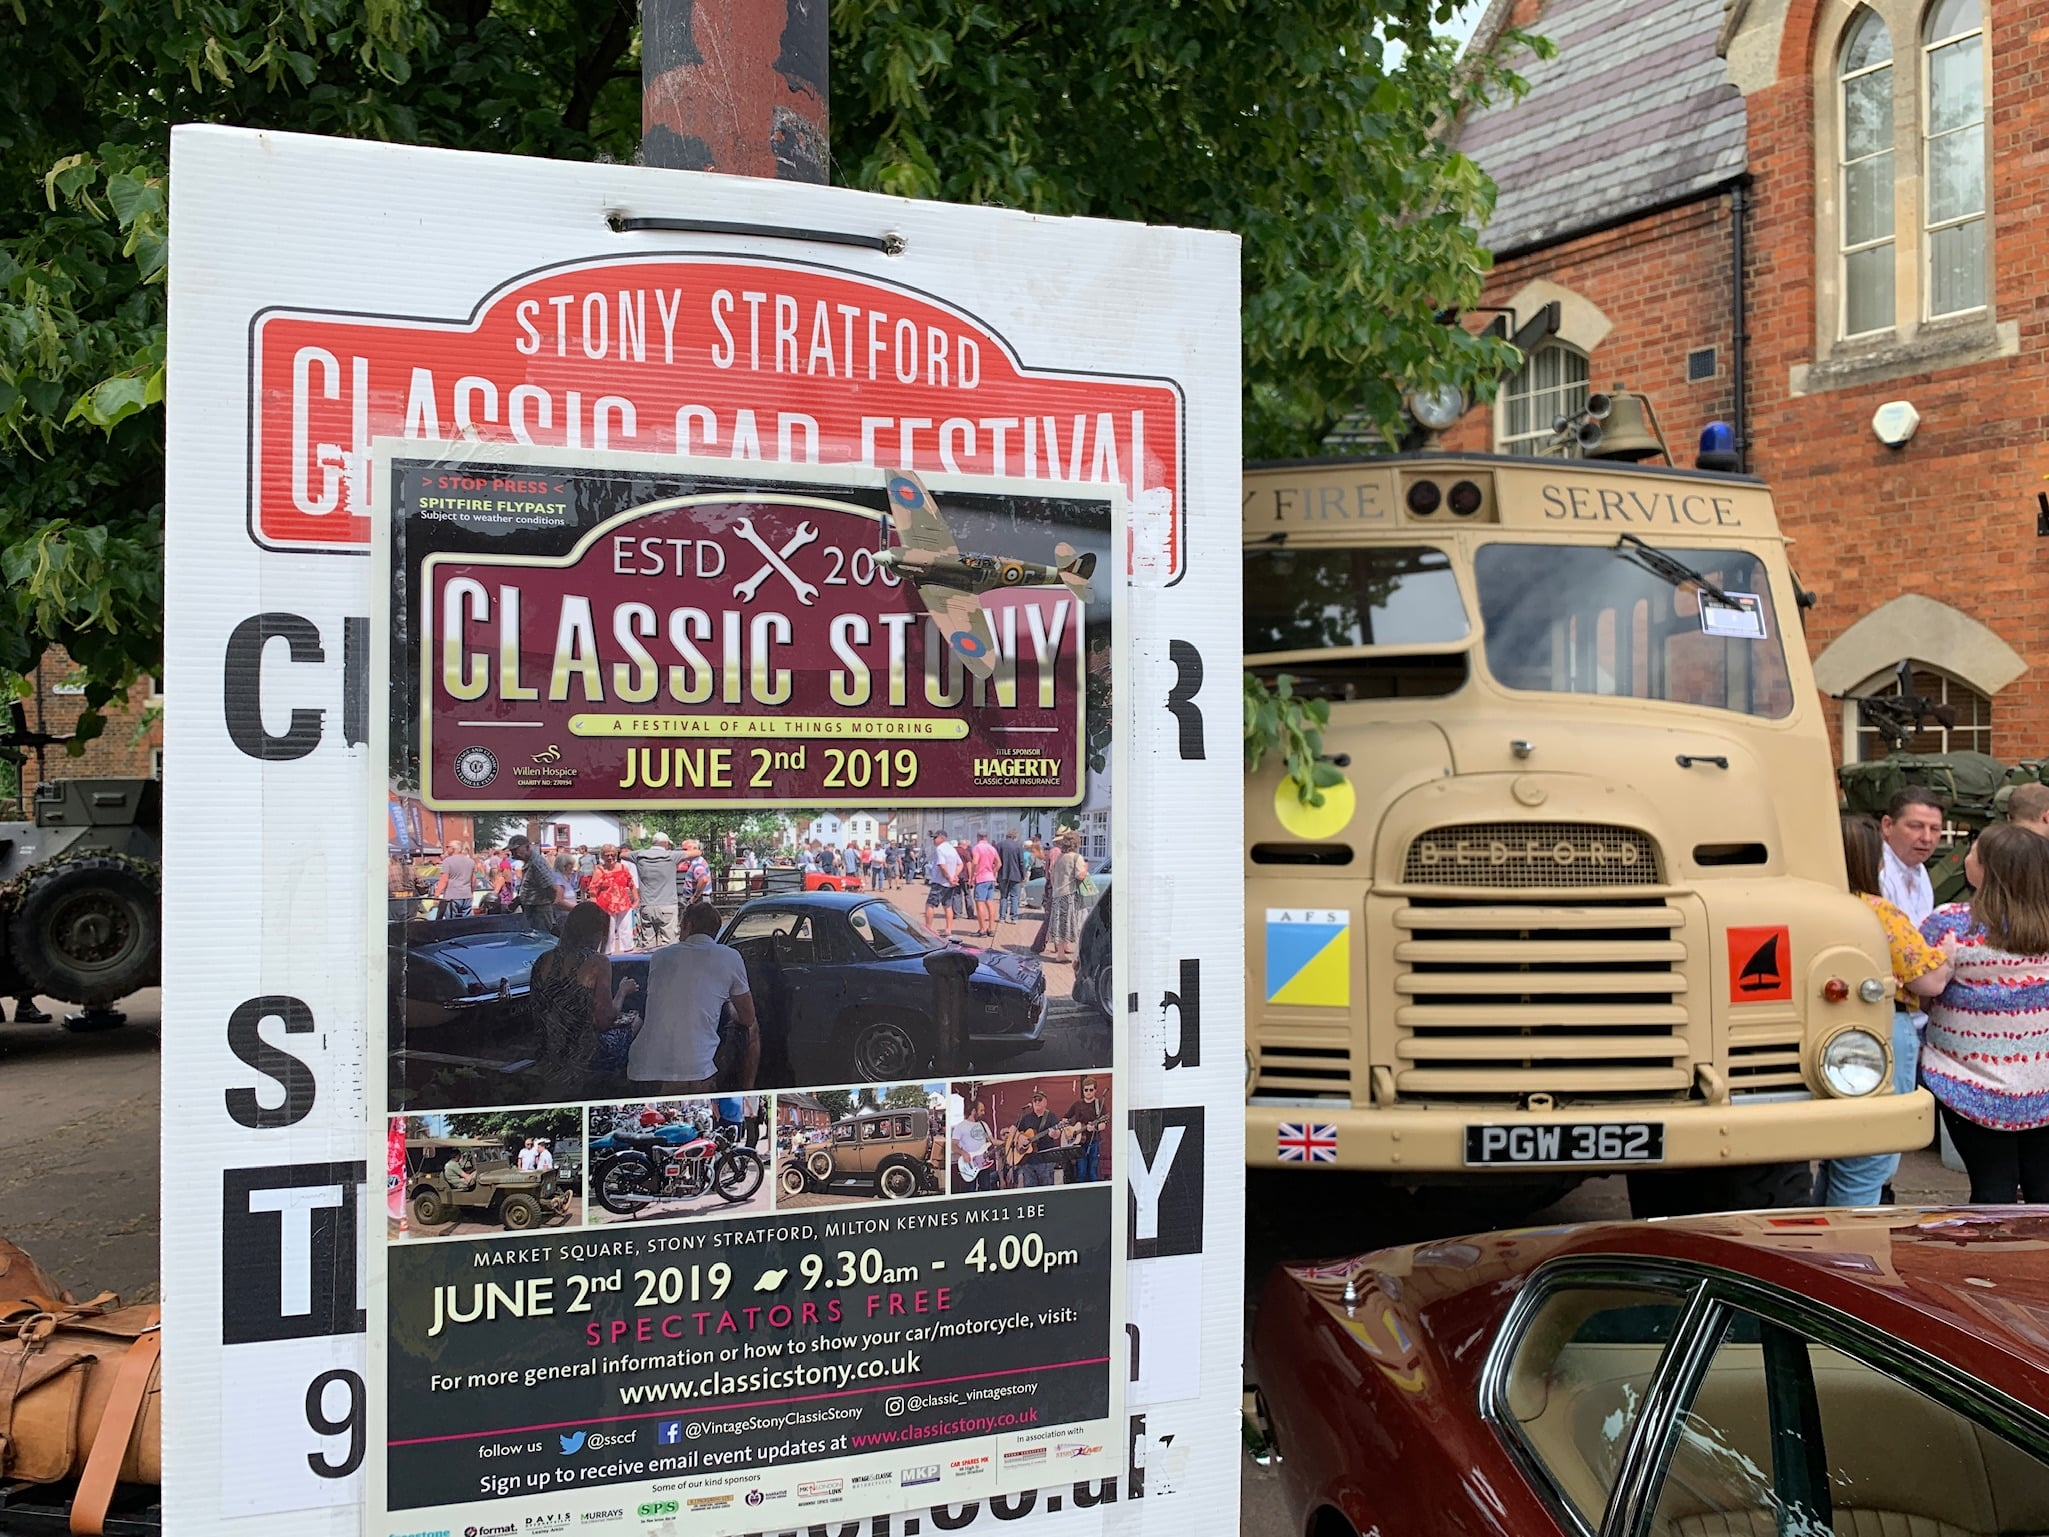 Stony Stratford Classic Car Festival poster and fire engine